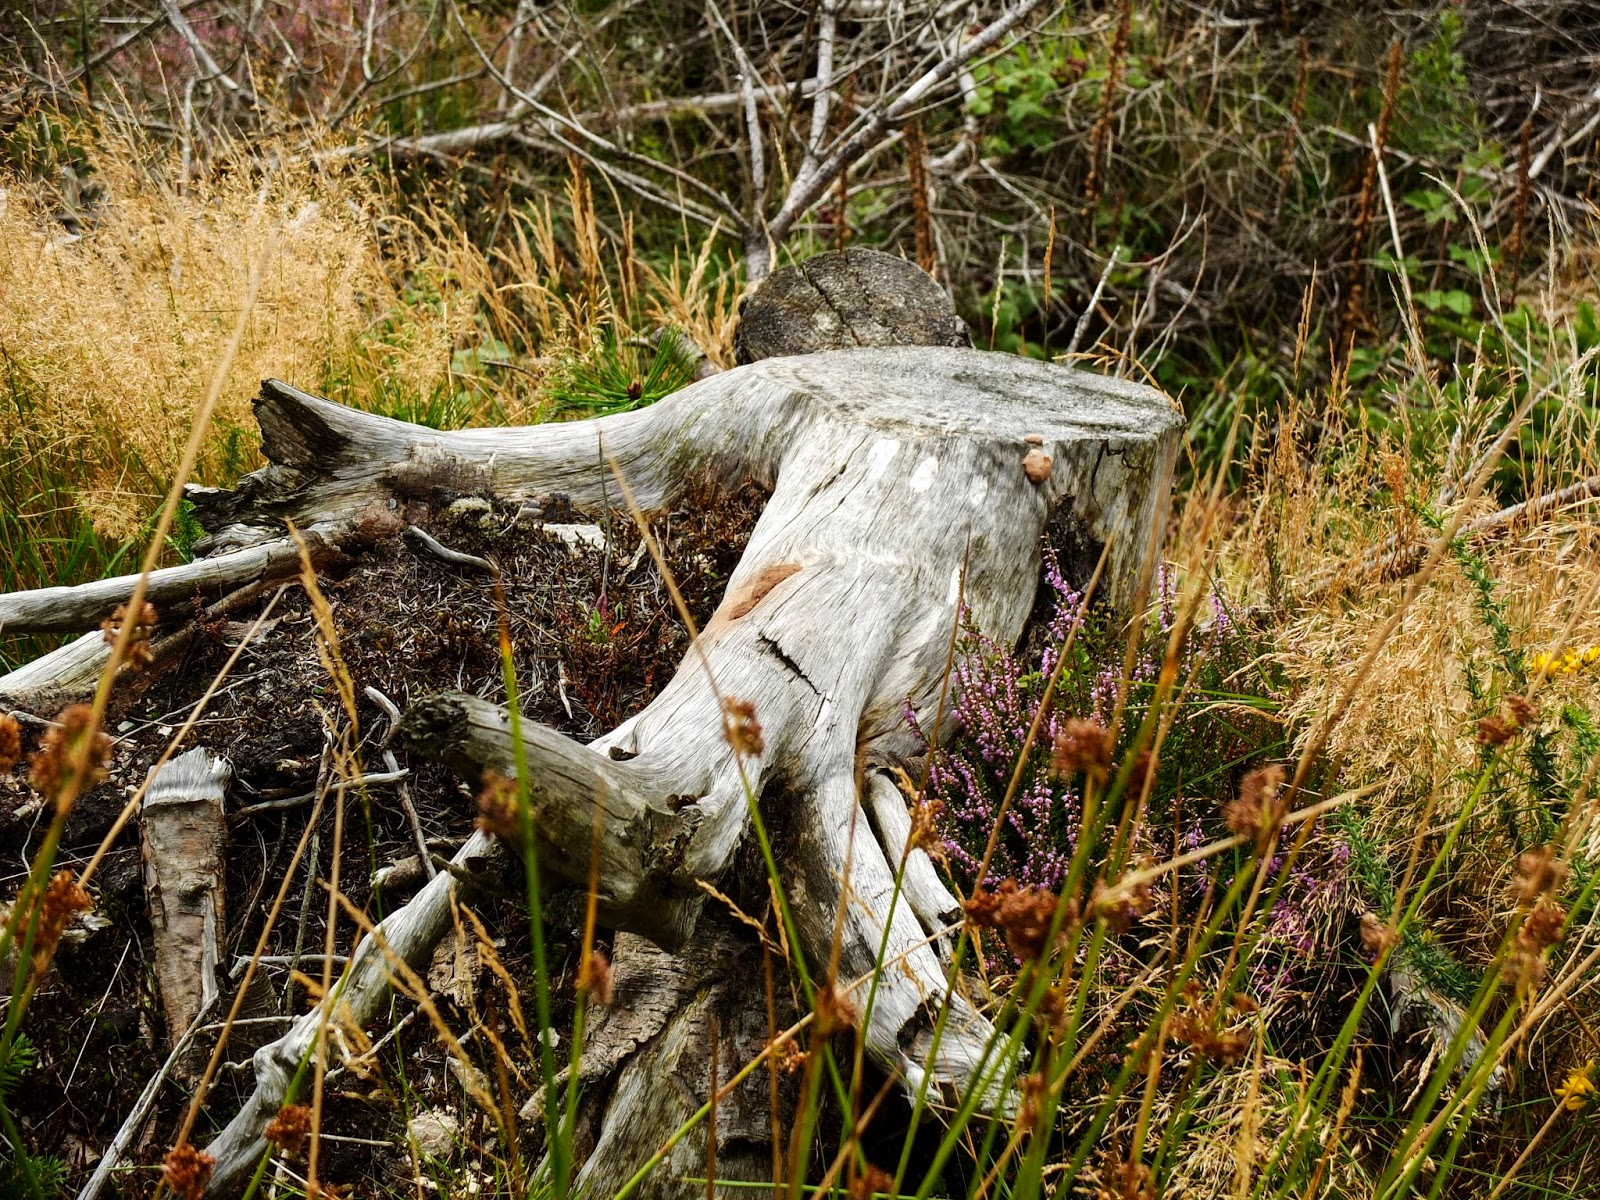 An old and grey tree stump in the Boggeragh Mountains in County Cork.